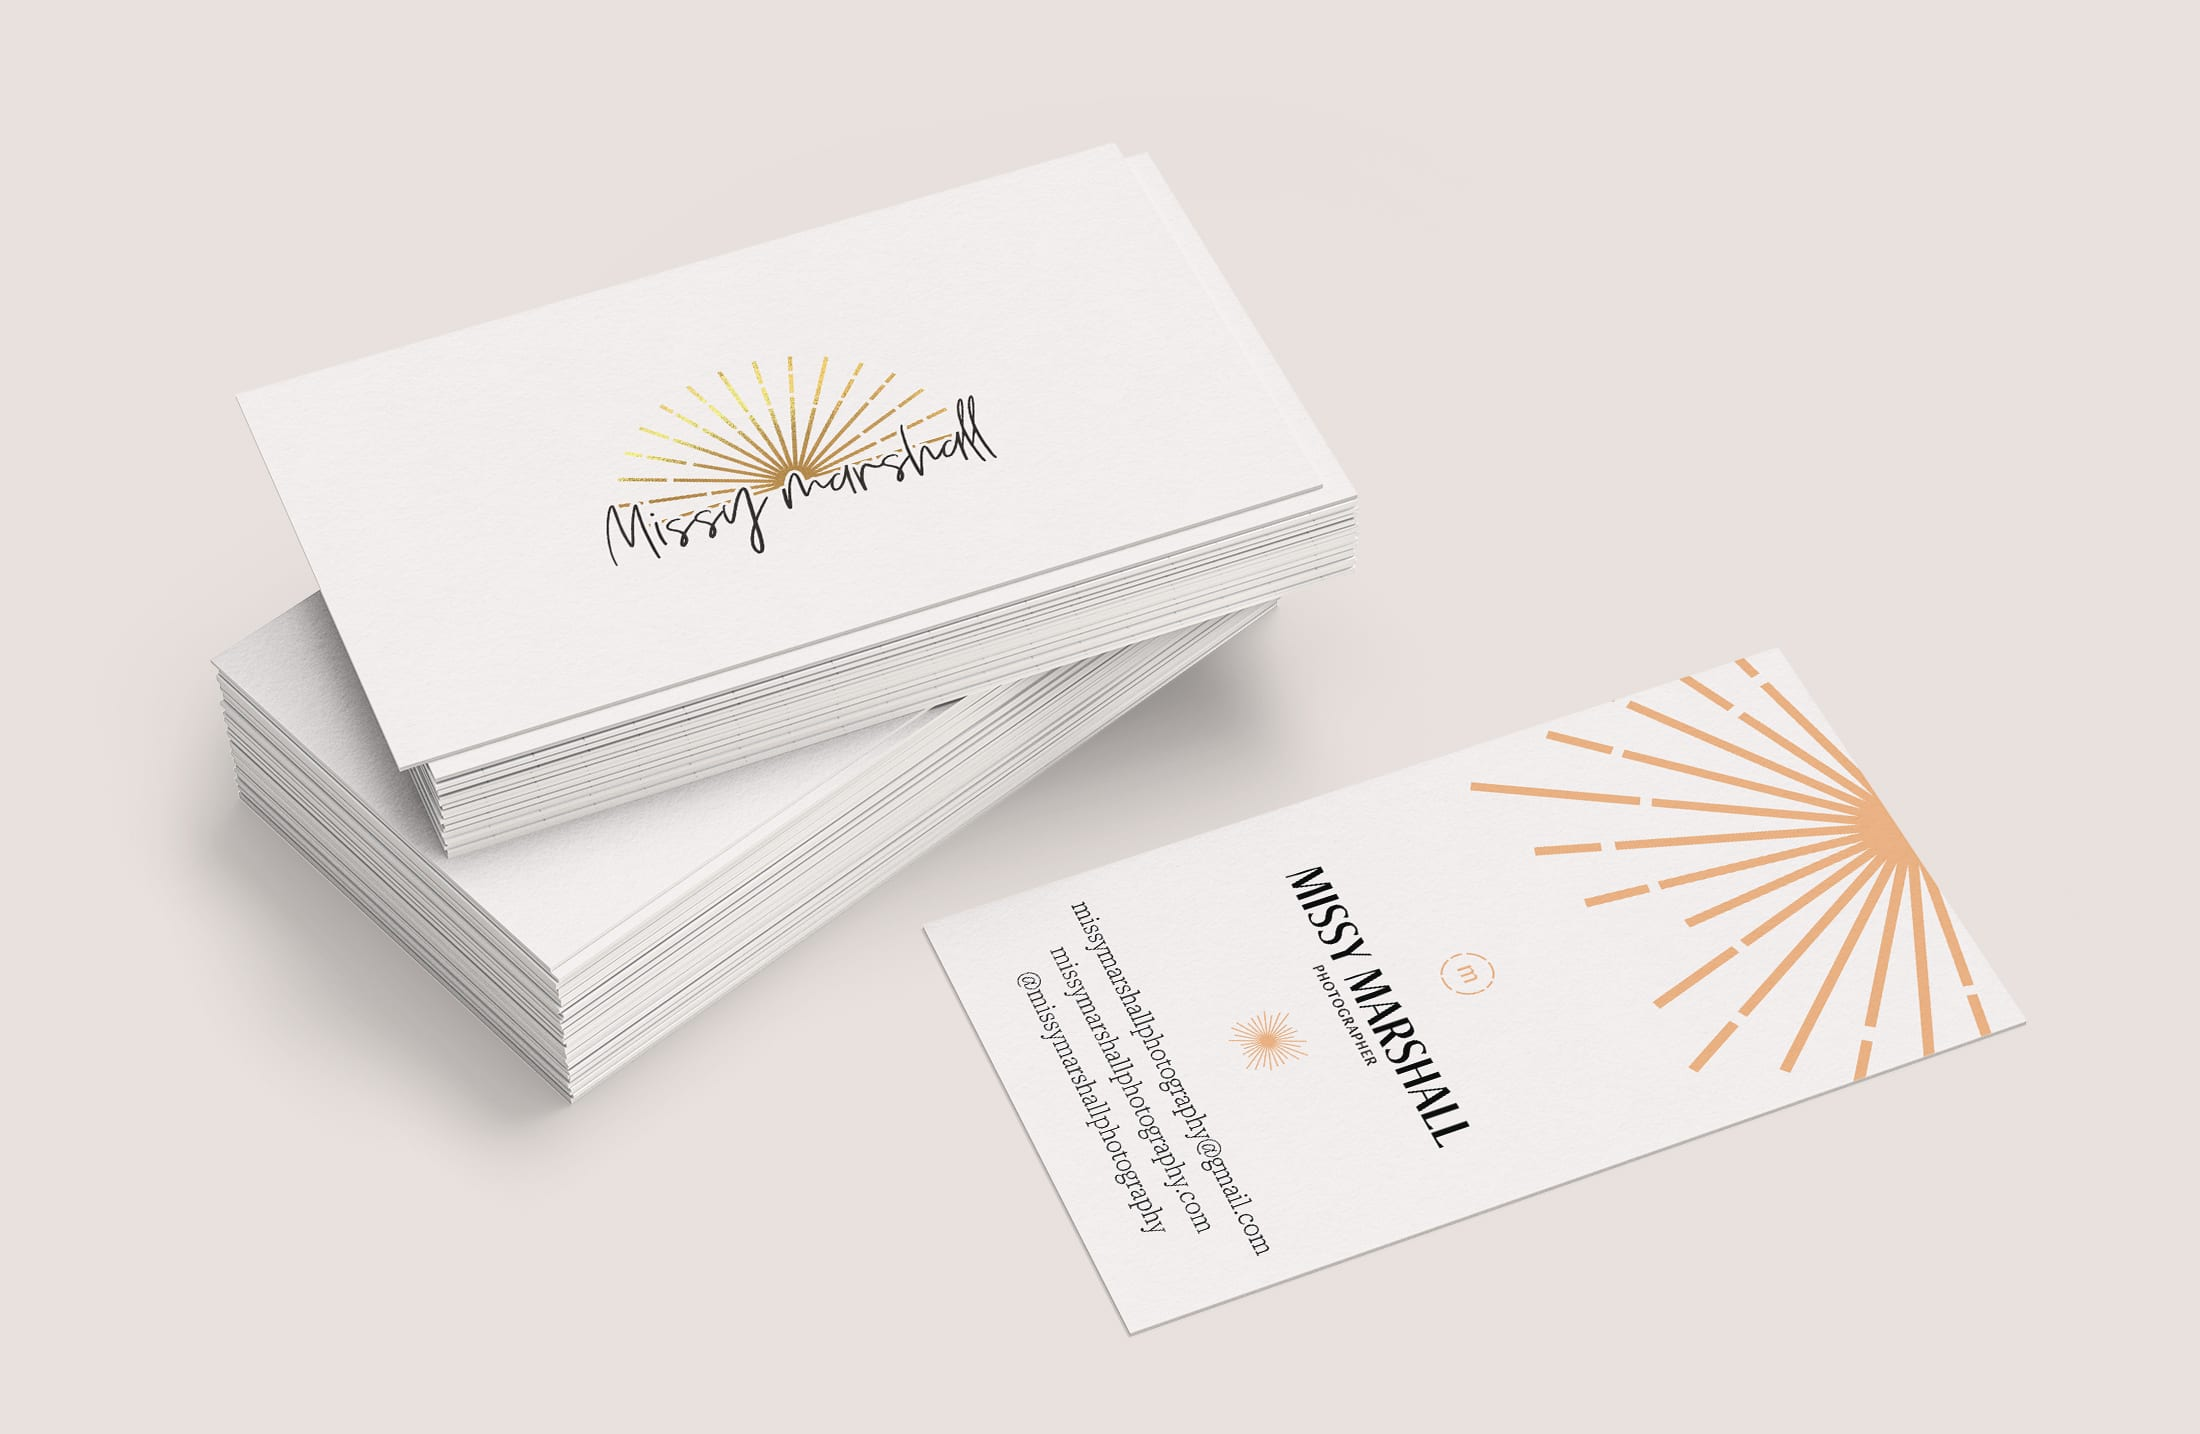 A stack of business cards displaying the Missy Marshall Photography logo and information on Missy Marshall